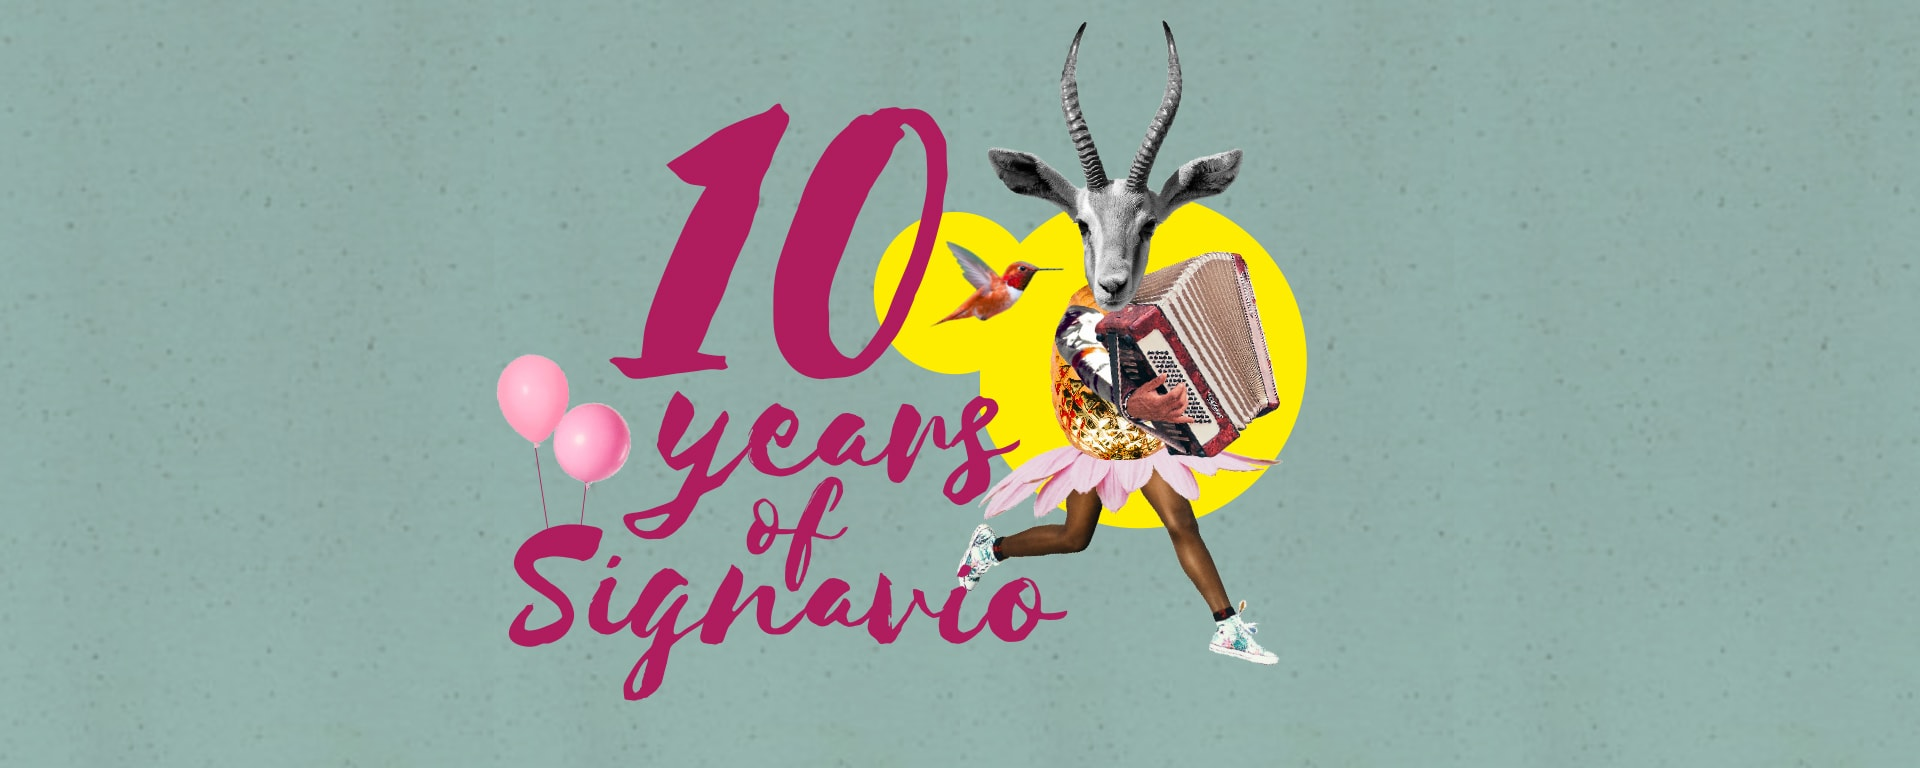 10-years-of-Signavio-fr